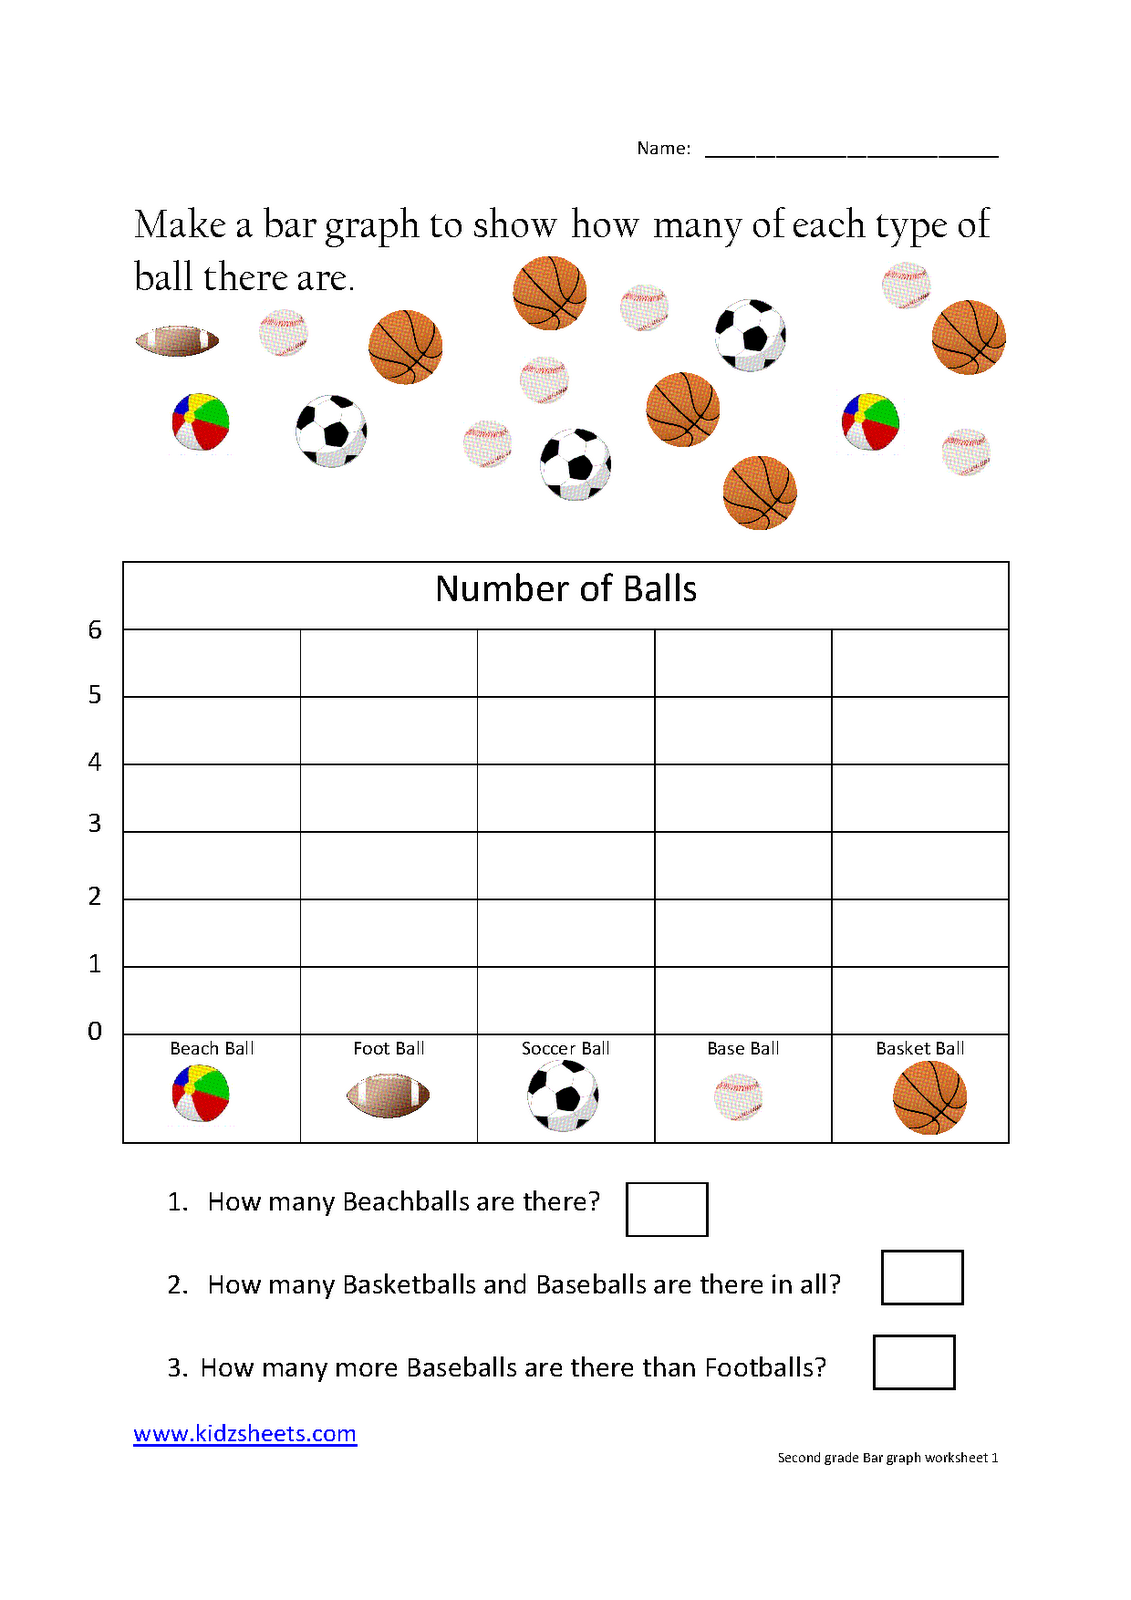 Worksheets Worksheets For Second Grade kidz worksheets second grade bar graph worksheet1 graph